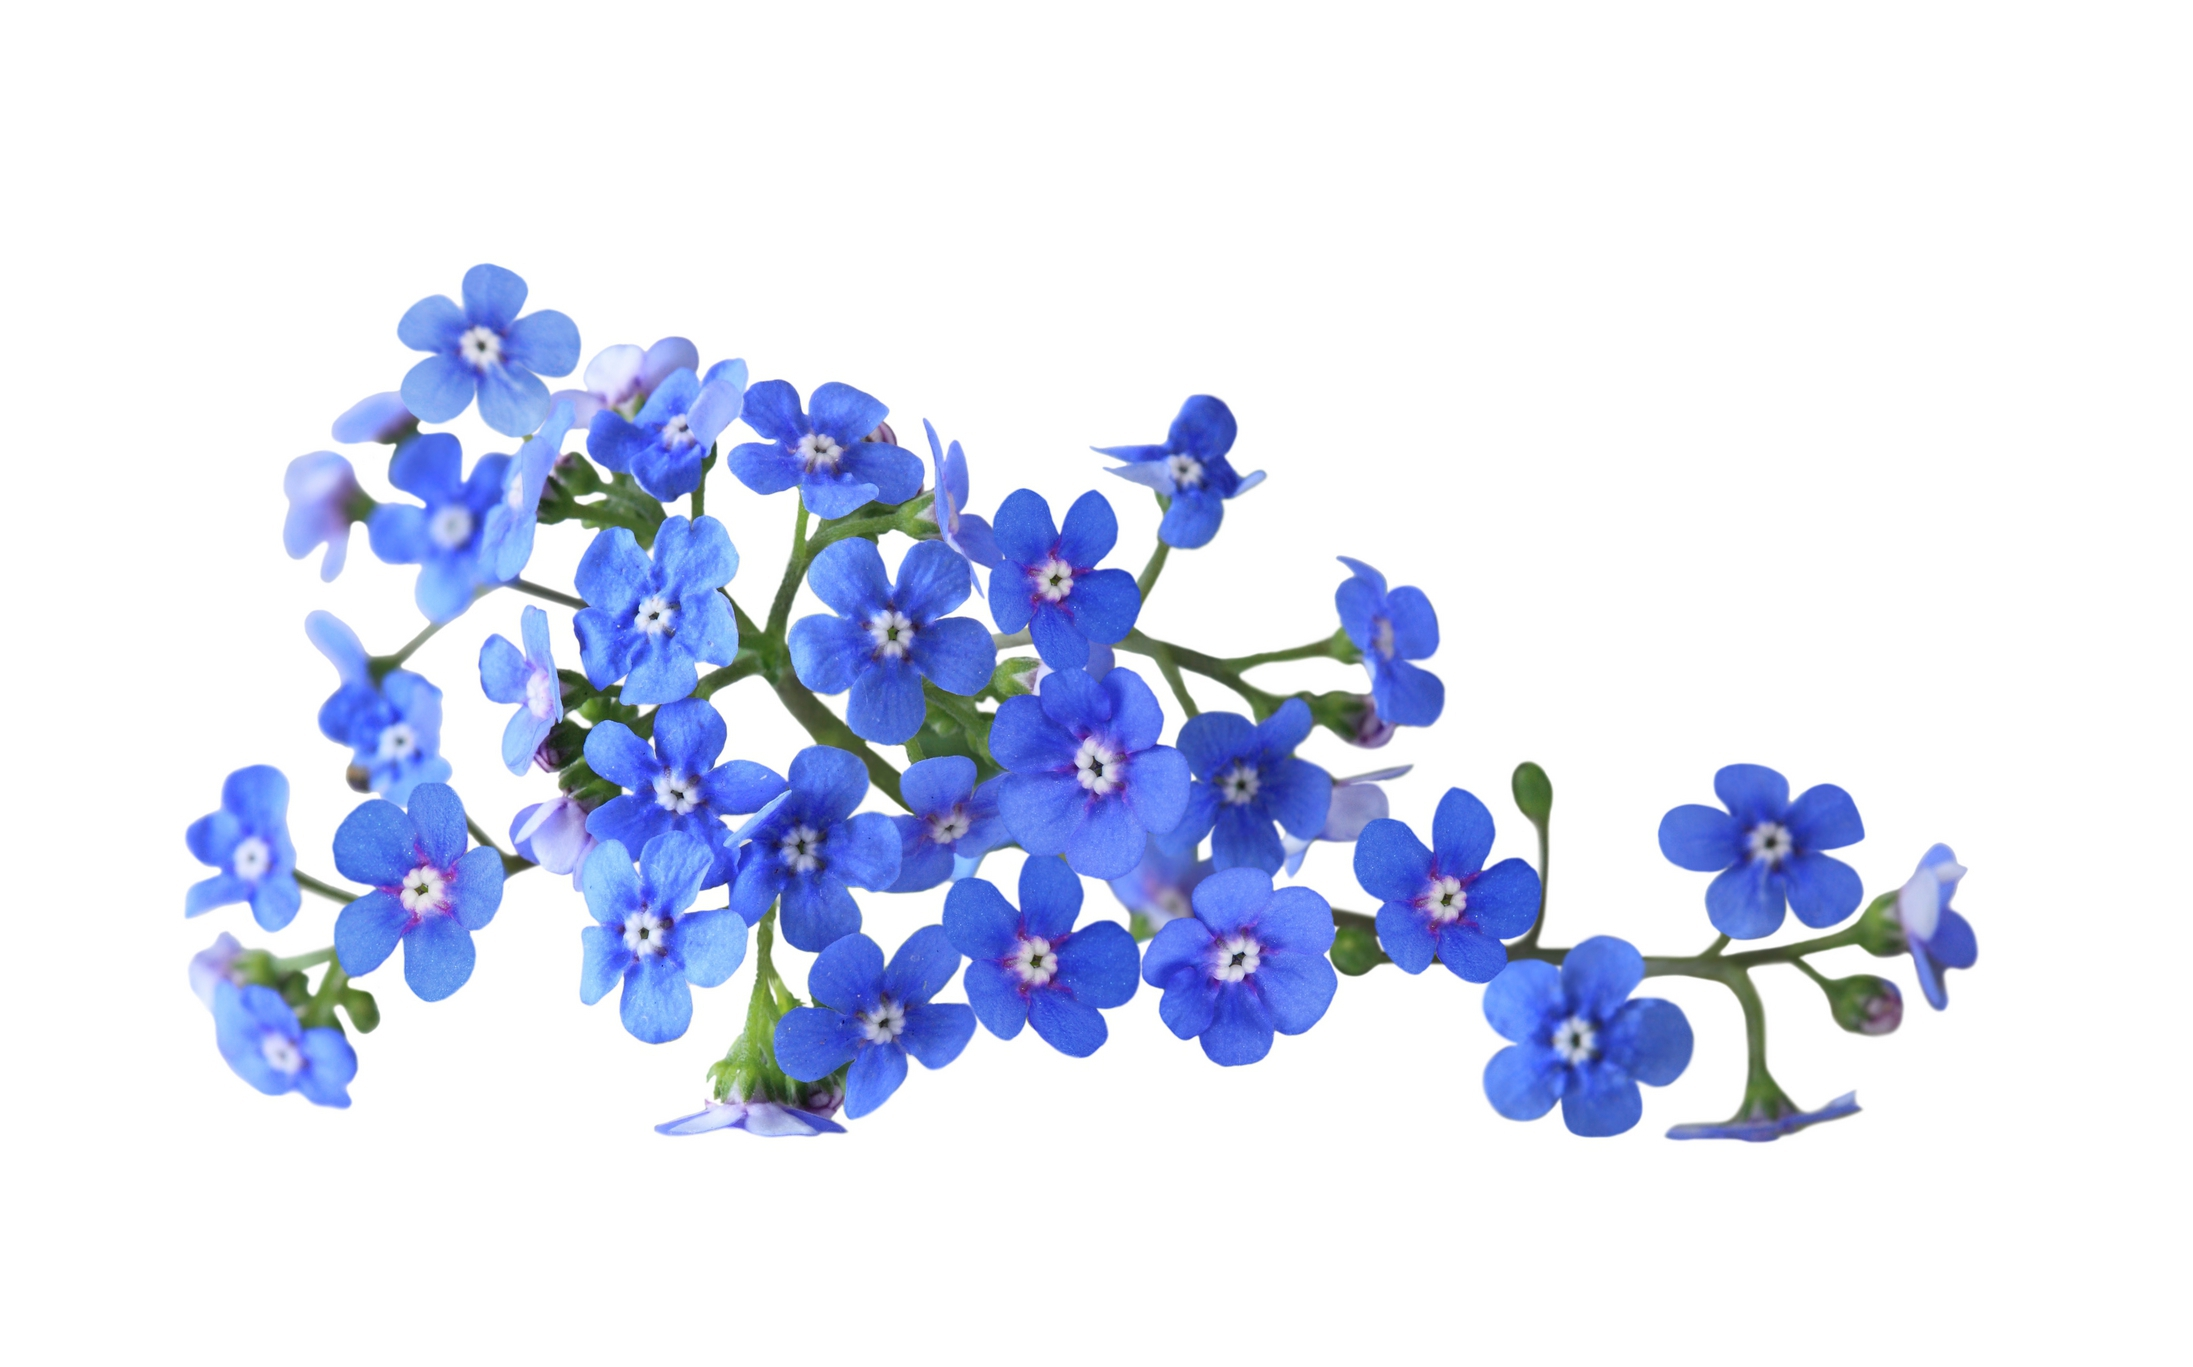 Forget Me Not Flower Wallpaper For Computer